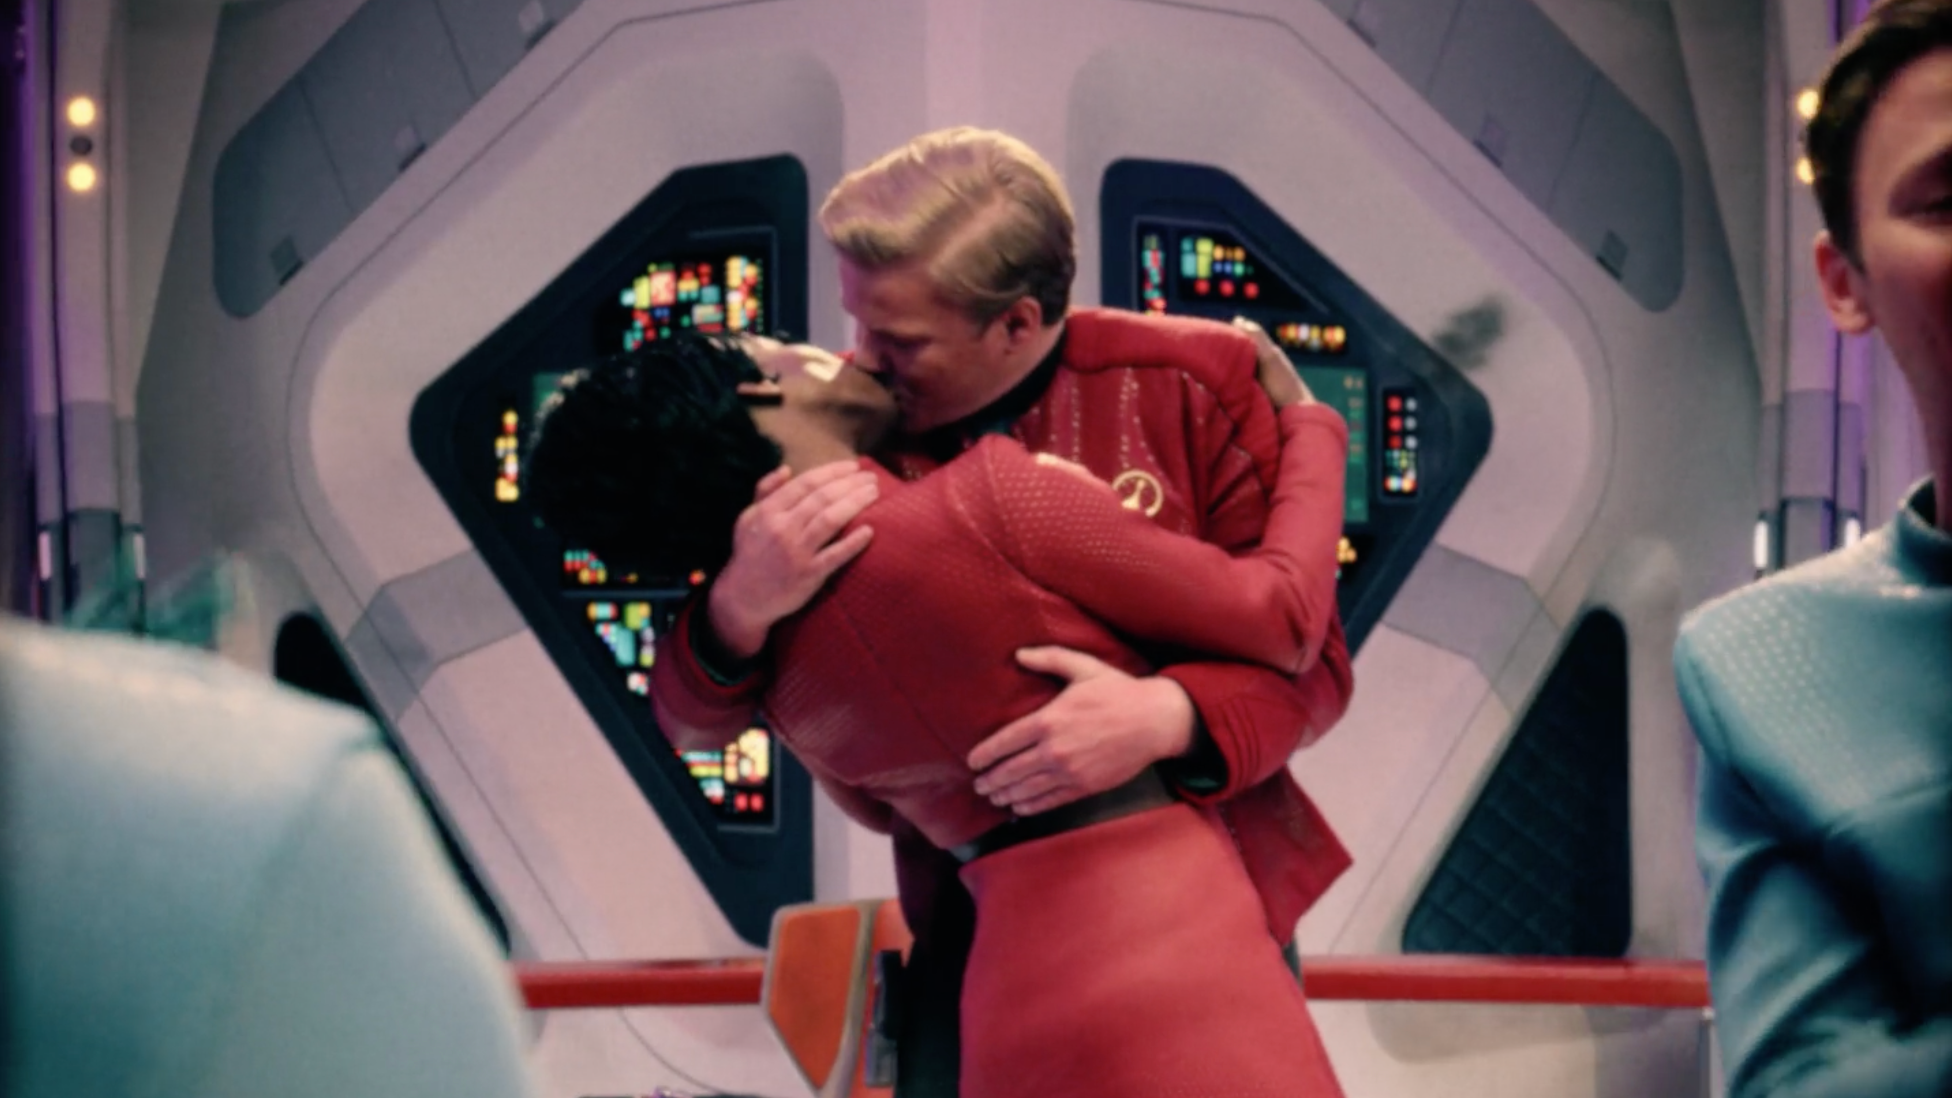 That Major Star Trek Reference In Black Mirror's 'USS Callister' Was Not A Coincidence